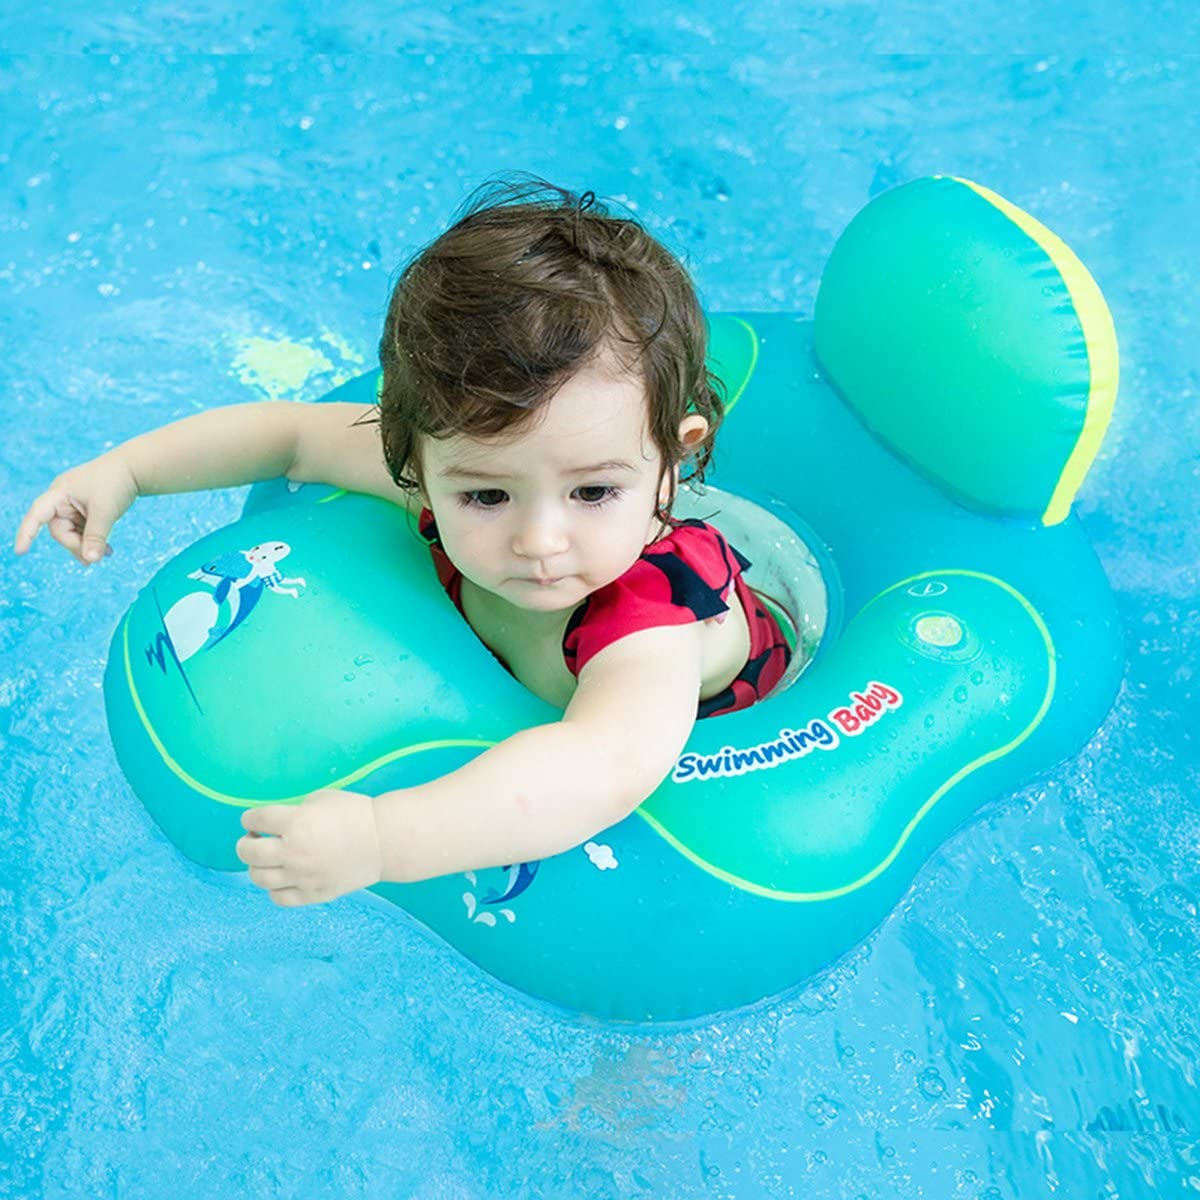 BLUE Baby Swimming Ring Floats with Safety Seat Double Airbag Swim Rings for Babies Kids Swimming Float Baby Floats for Pool Swim Training Aid Kids PVC Pool Floats for Toddlers of 6-36 Months